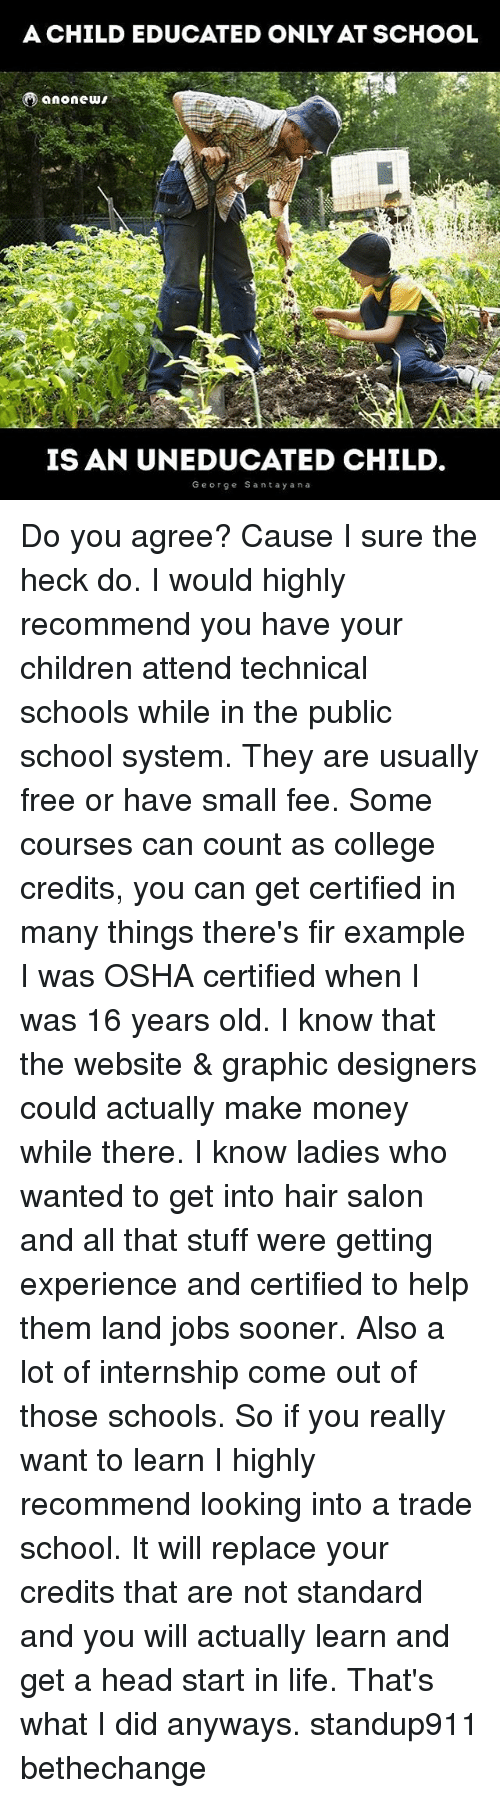 Children, College, and Head: A CHILD EDUCATED ONLY AT SCHOOL  A And  IS AN UNEDUCATED CHILD  George Santay ana Do you agree? Cause I sure the heck do. I would highly recommend you have your children attend technical schools while in the public school system. They are usually free or have small fee. Some courses can count as college credits, you can get certified in many things there's fir example I was OSHA certified when I was 16 years old. I know that the website & graphic designers could actually make money while there. I know ladies who wanted to get into hair salon and all that stuff were getting experience and certified to help them land jobs sooner. Also a lot of internship come out of those schools. So if you really want to learn I highly recommend looking into a trade school. It will replace your credits that are not standard and you will actually learn and get a head start in life. That's what I did anyways. standup911 bethechange